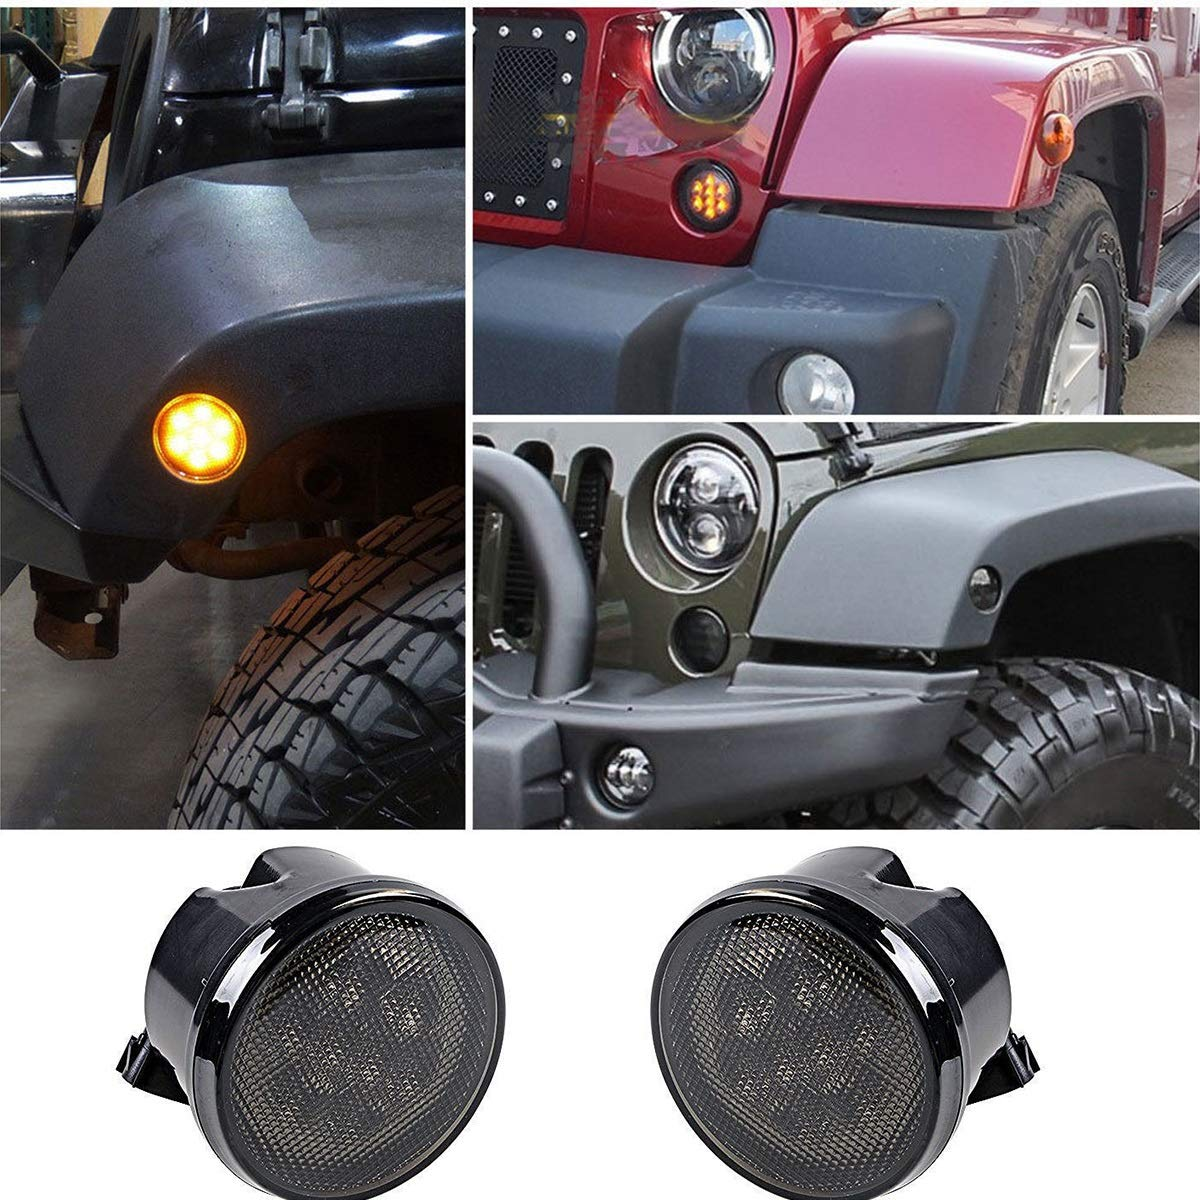 Dibiao 1 Pair Amber DRL Turn Signal LED Lights Offroad Driving Lights Headlamps LED Fog Lights